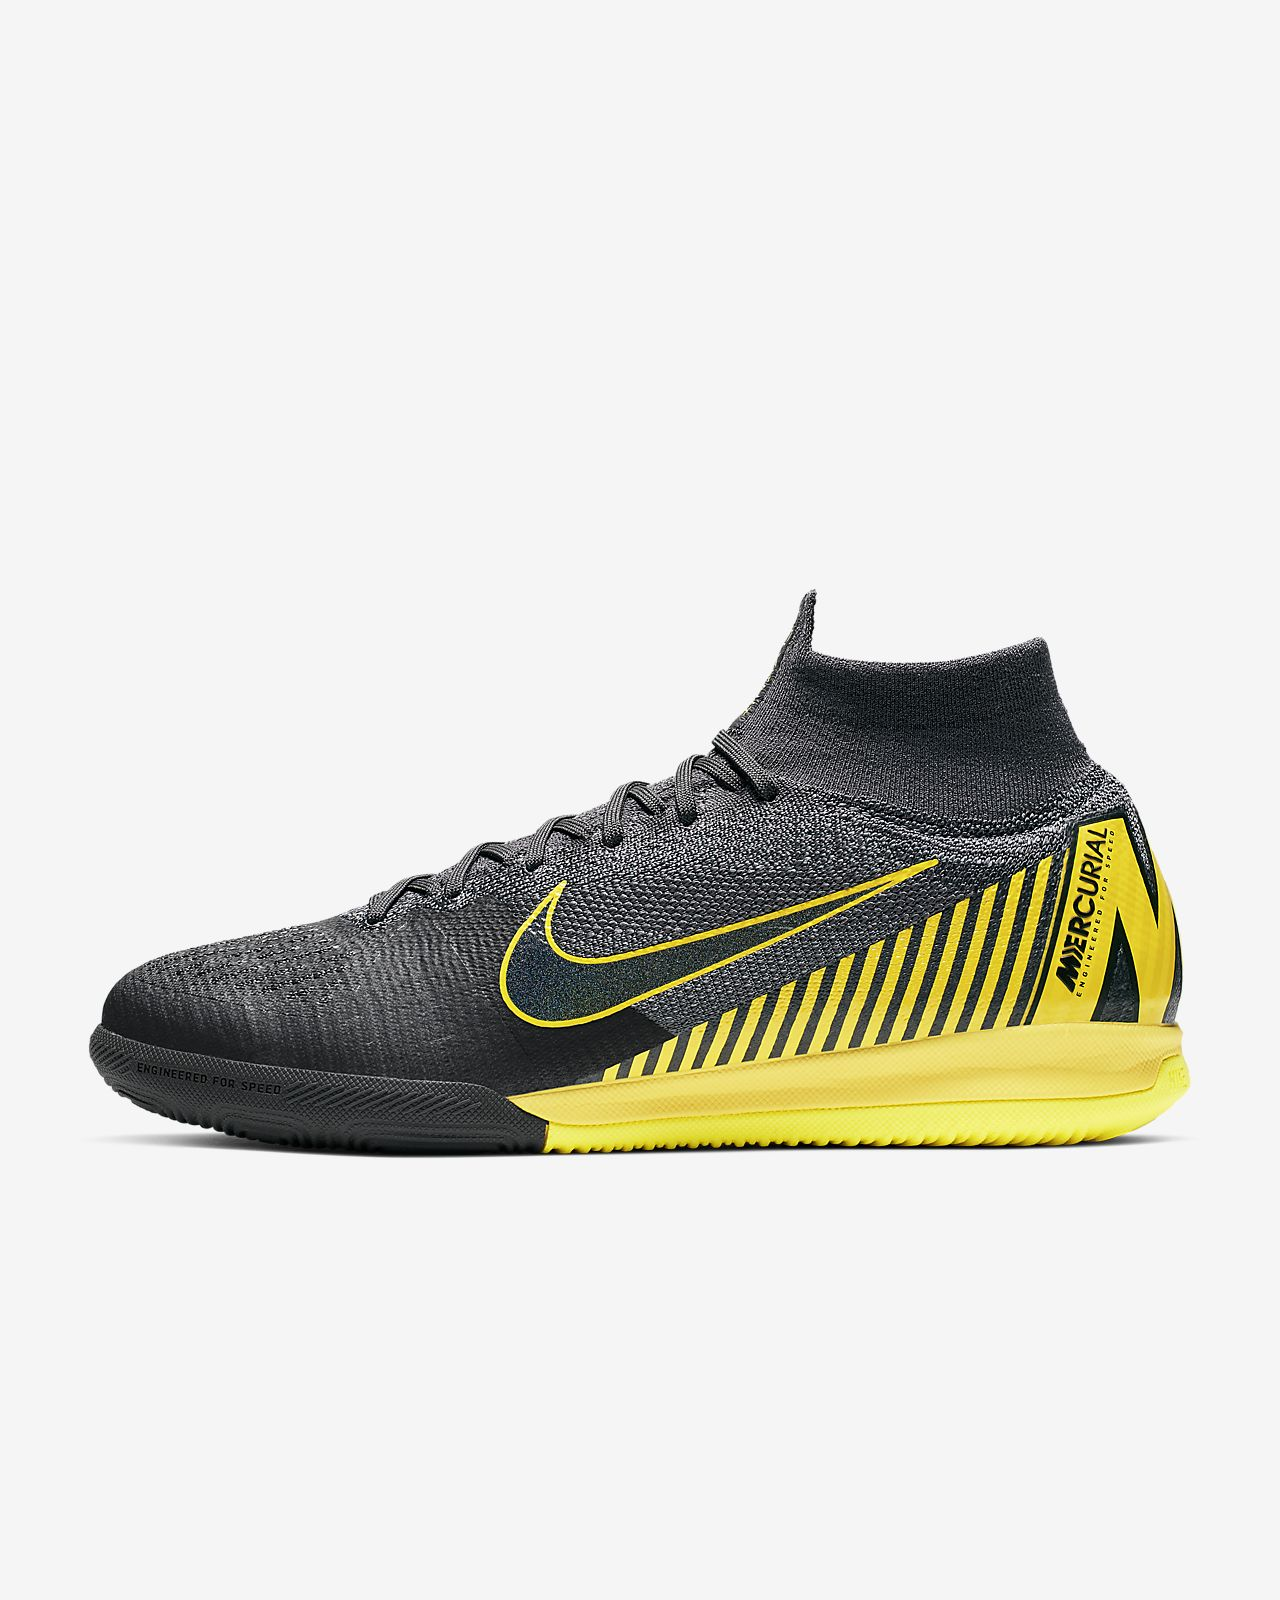 5bb030e79 ... Nike SuperflyX 6 Elite IC Game Over Men's Indoor/Court Football Boot